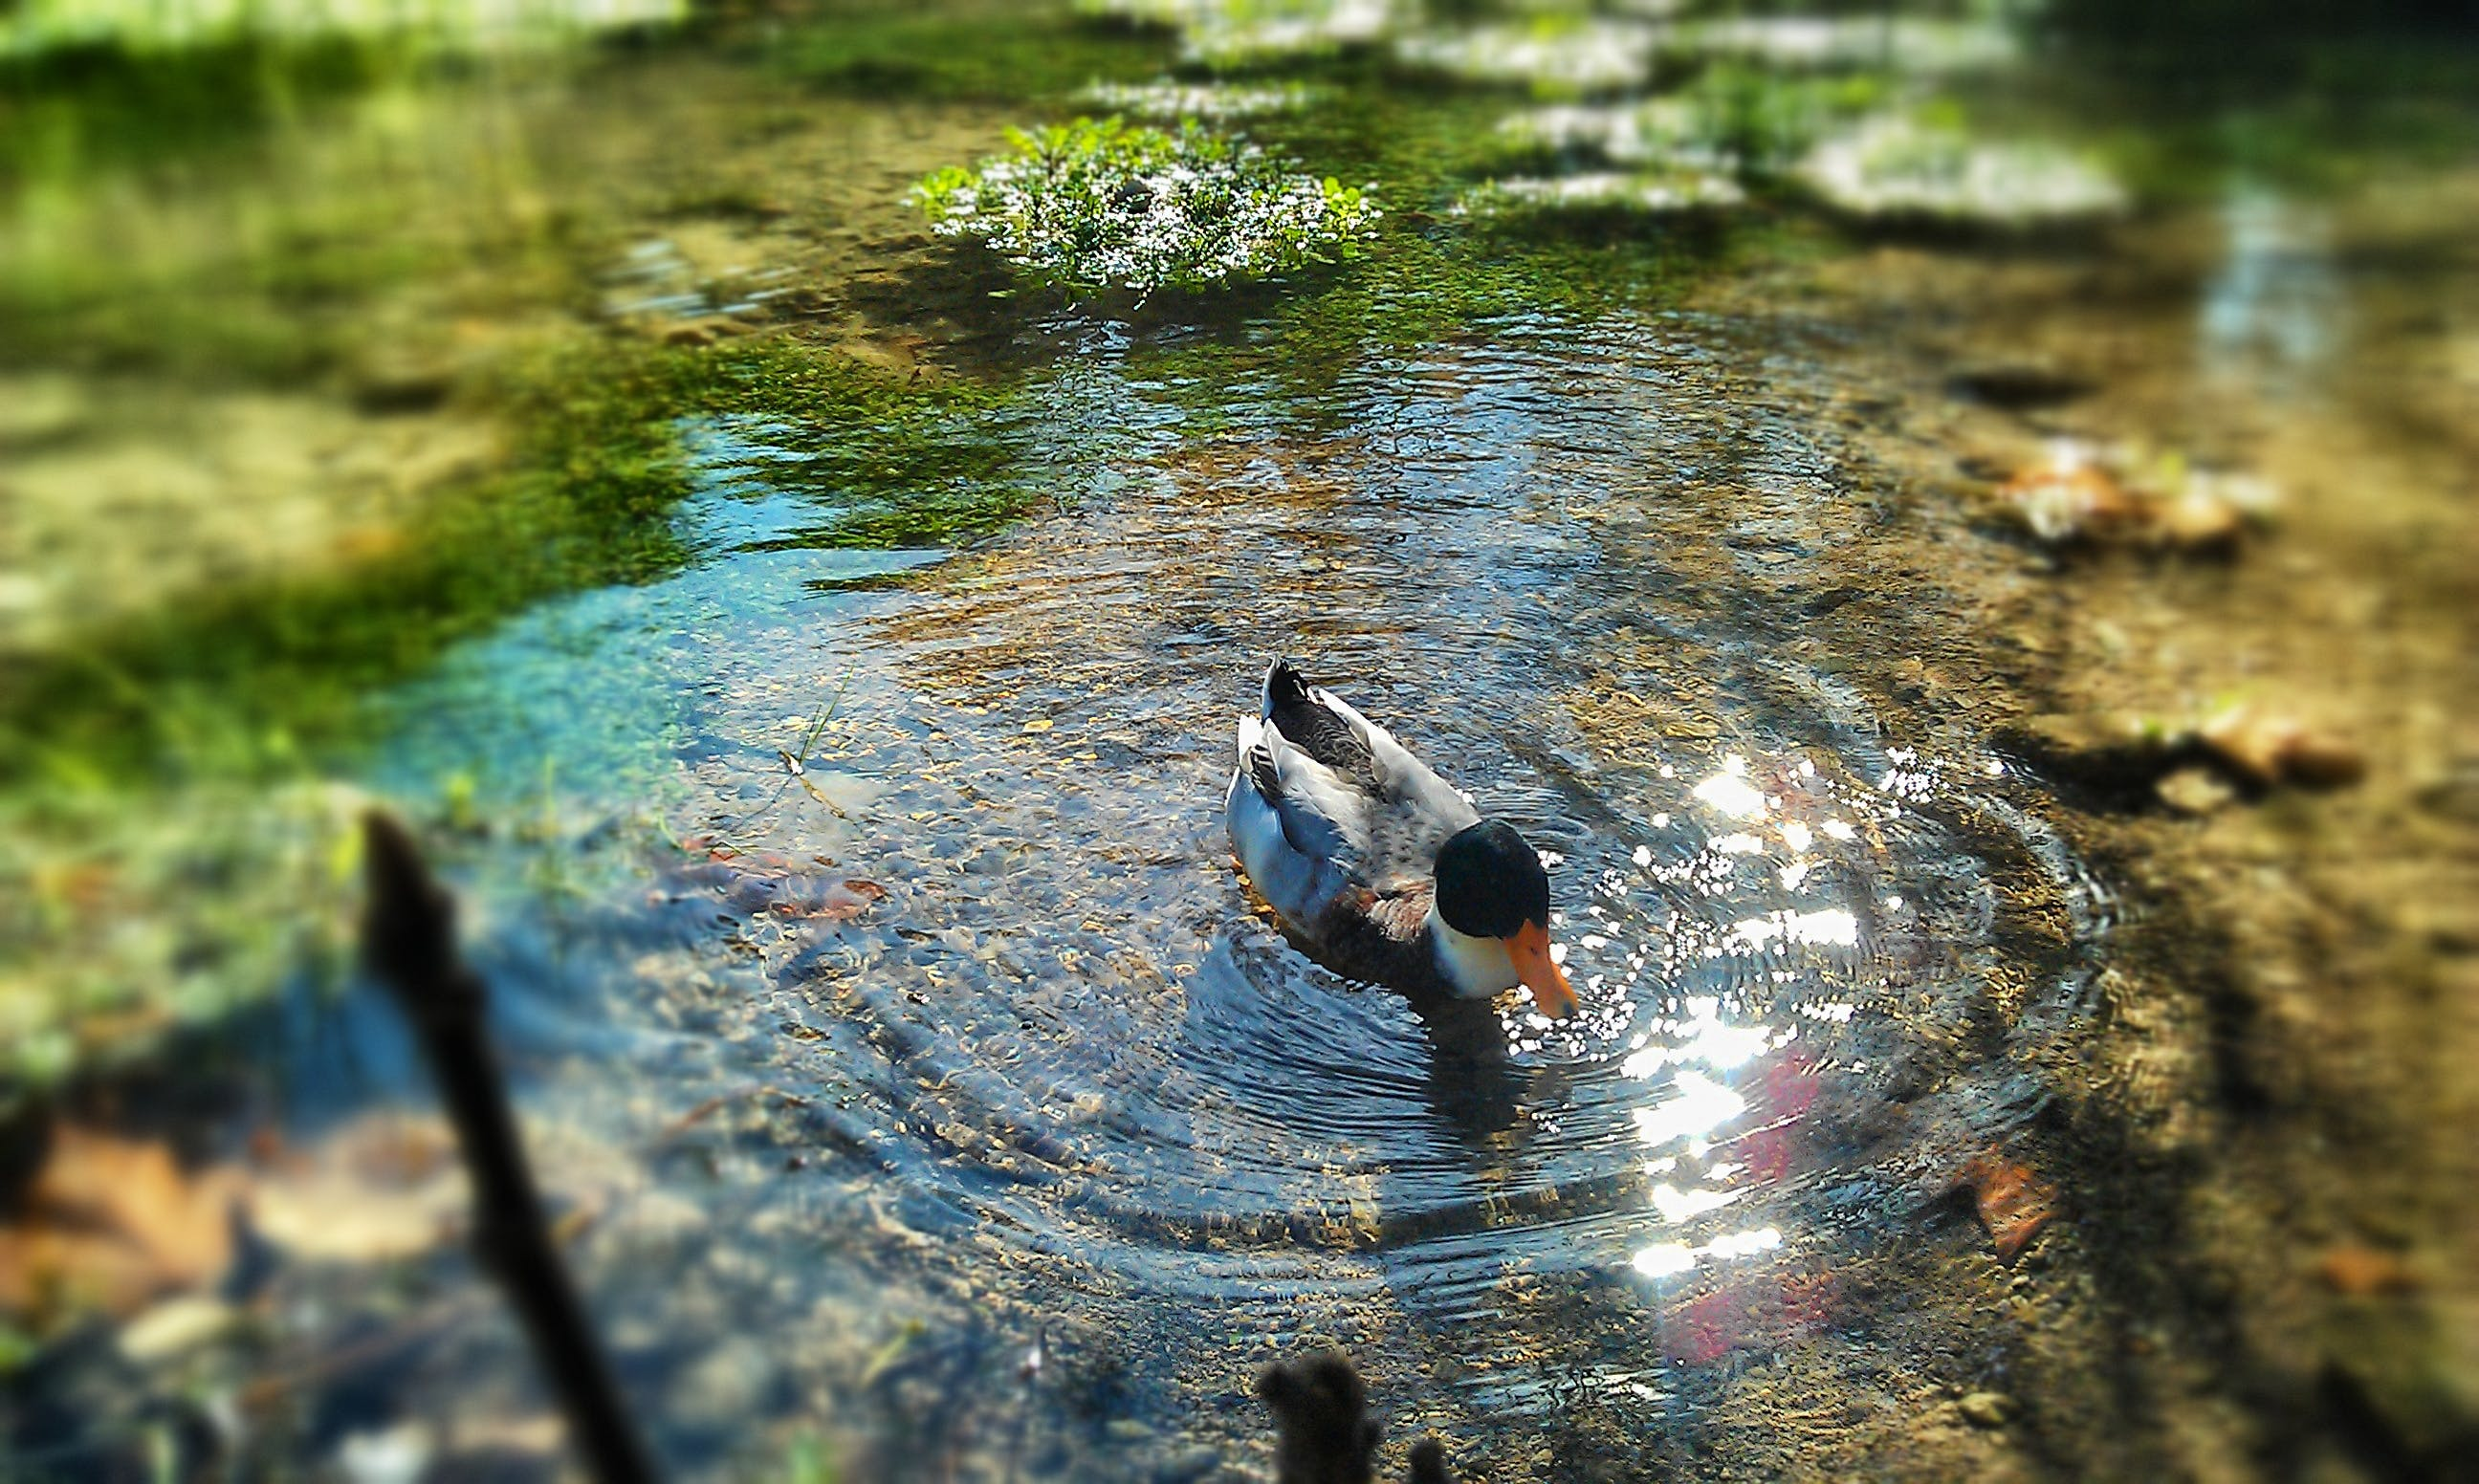 Gray Black and Orange Duck Swimming on Body of Water